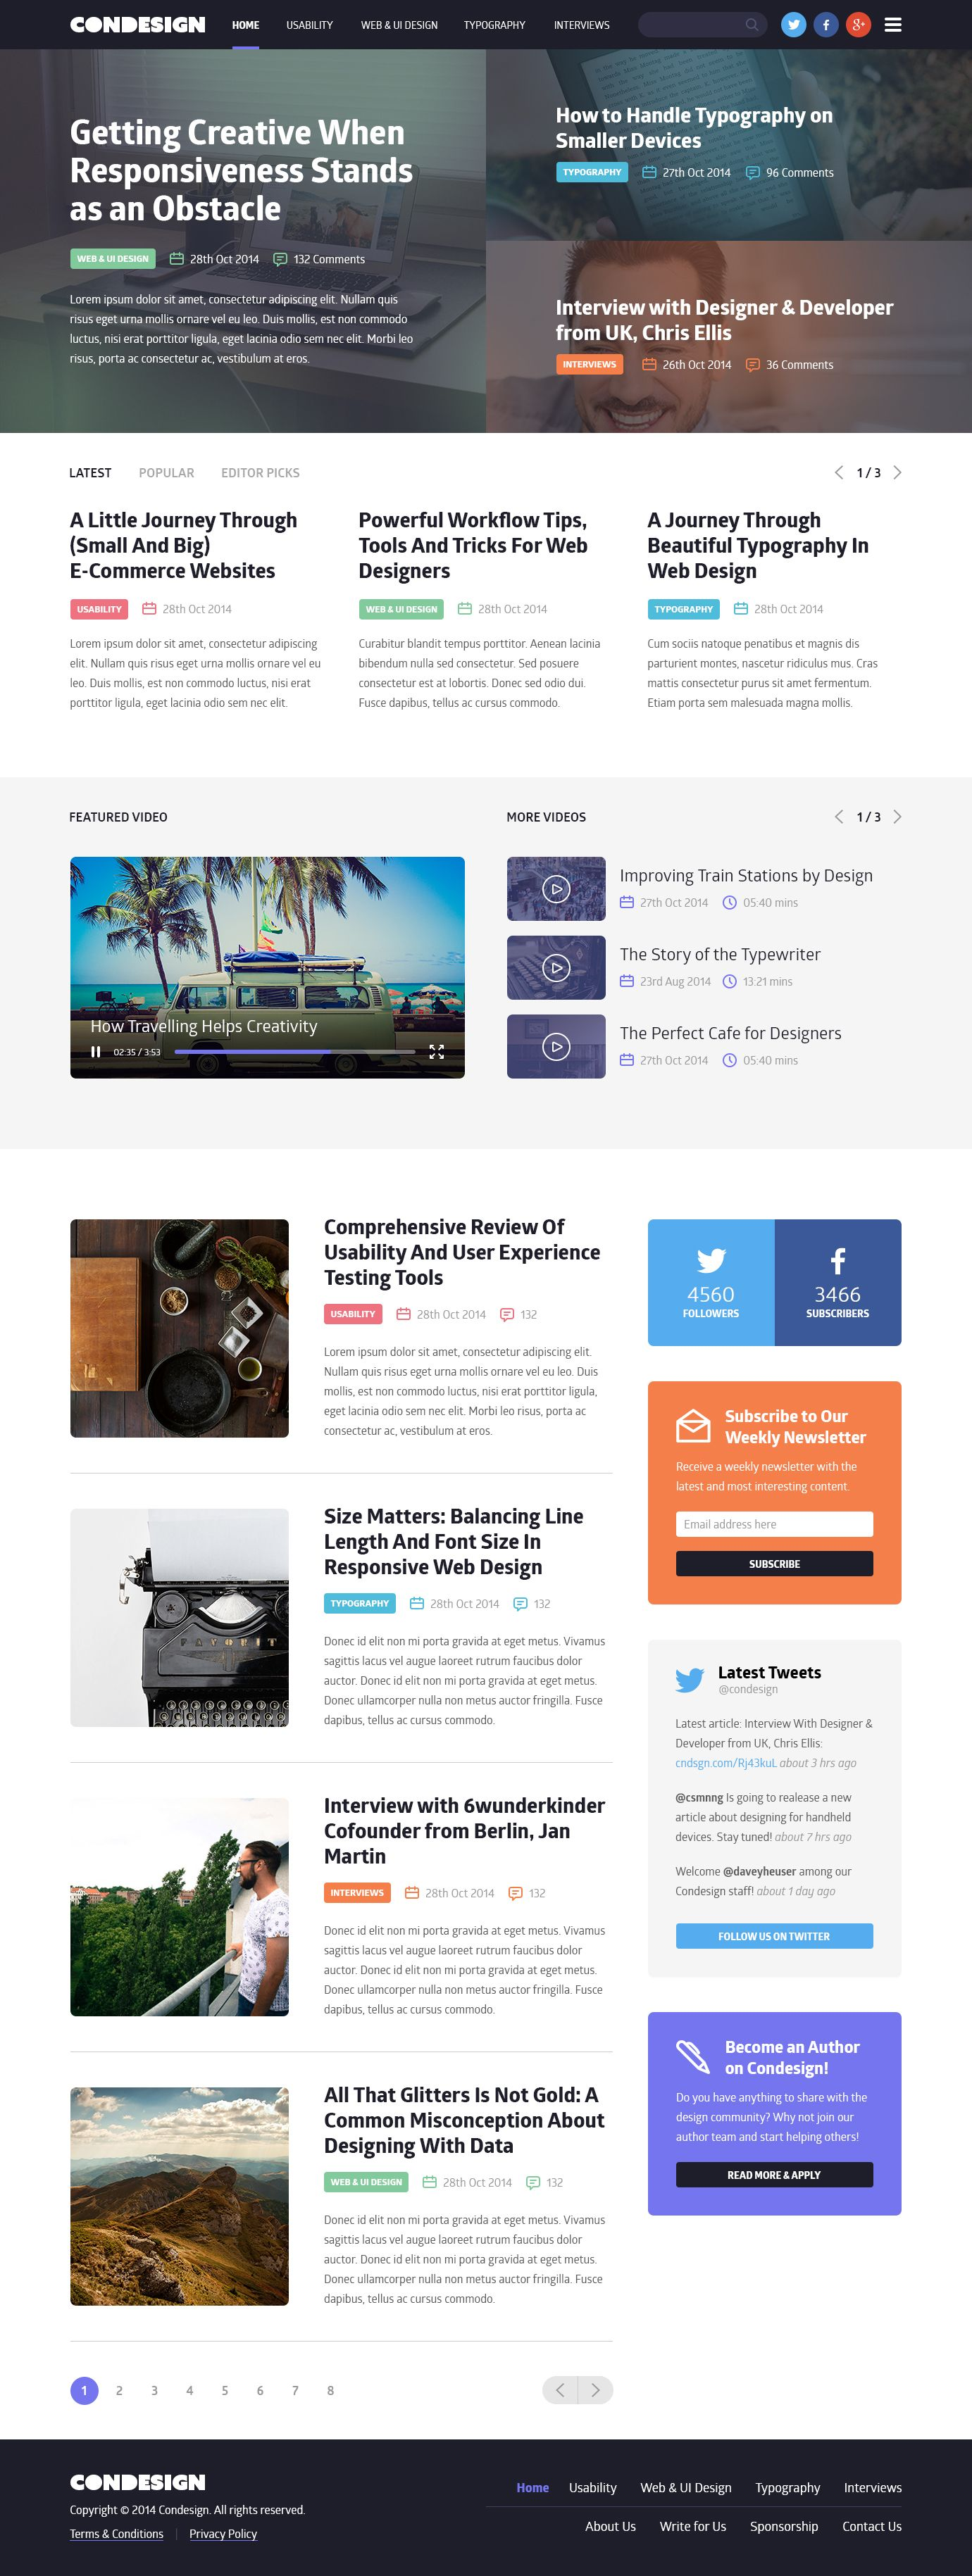 Condesign Blog Concept #blog #website #web [www.pinterest.com/loganless]